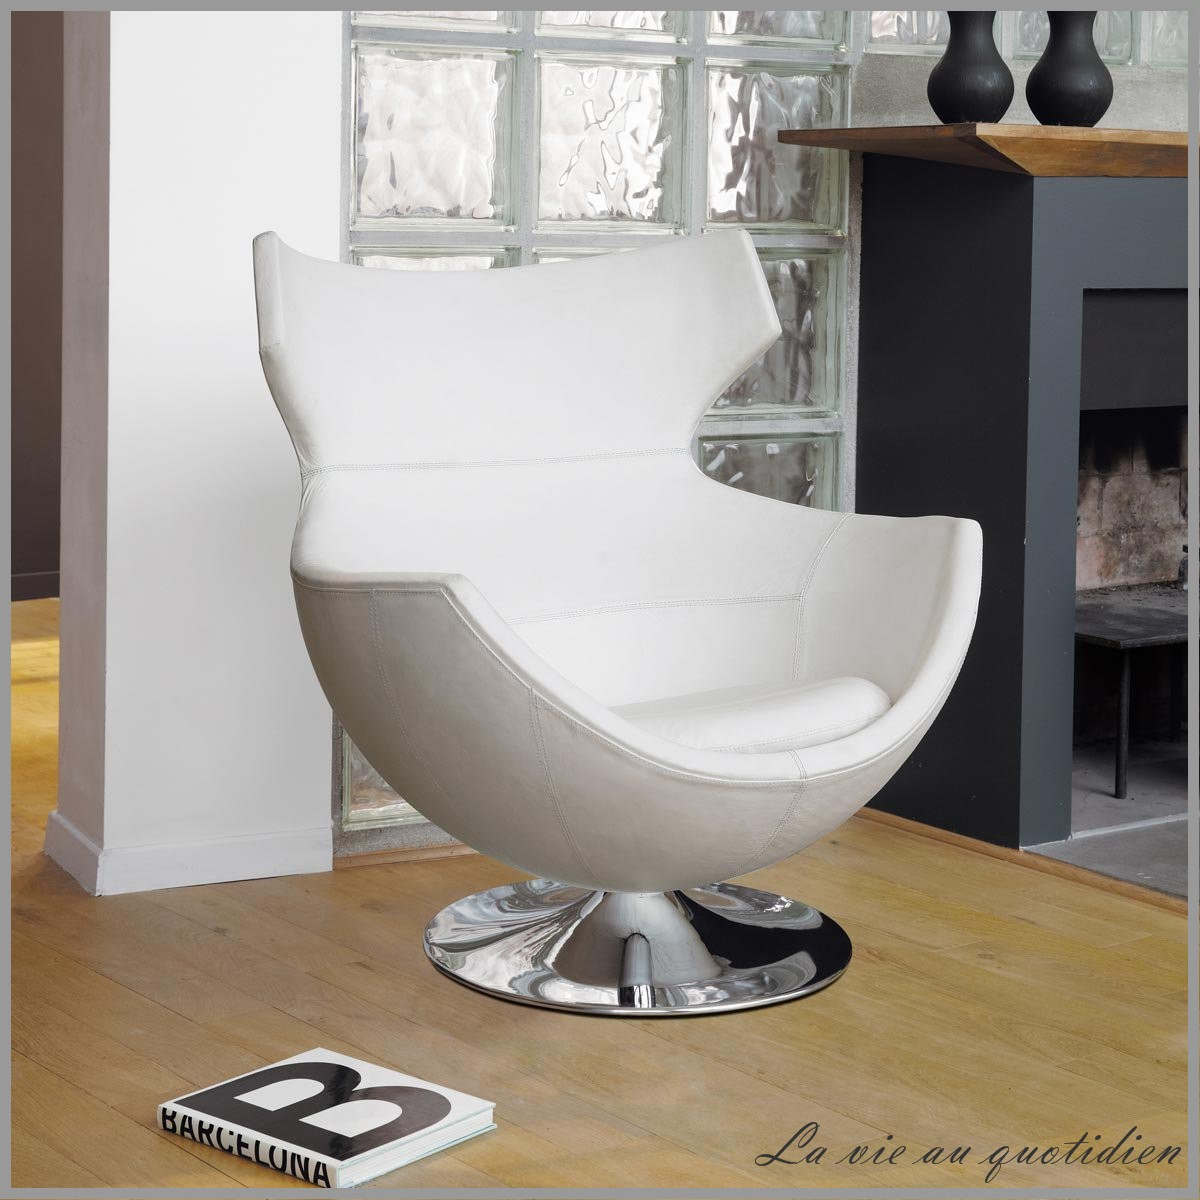 fauteuil moderne design pas cher id es de d coration int rieure french decor. Black Bedroom Furniture Sets. Home Design Ideas